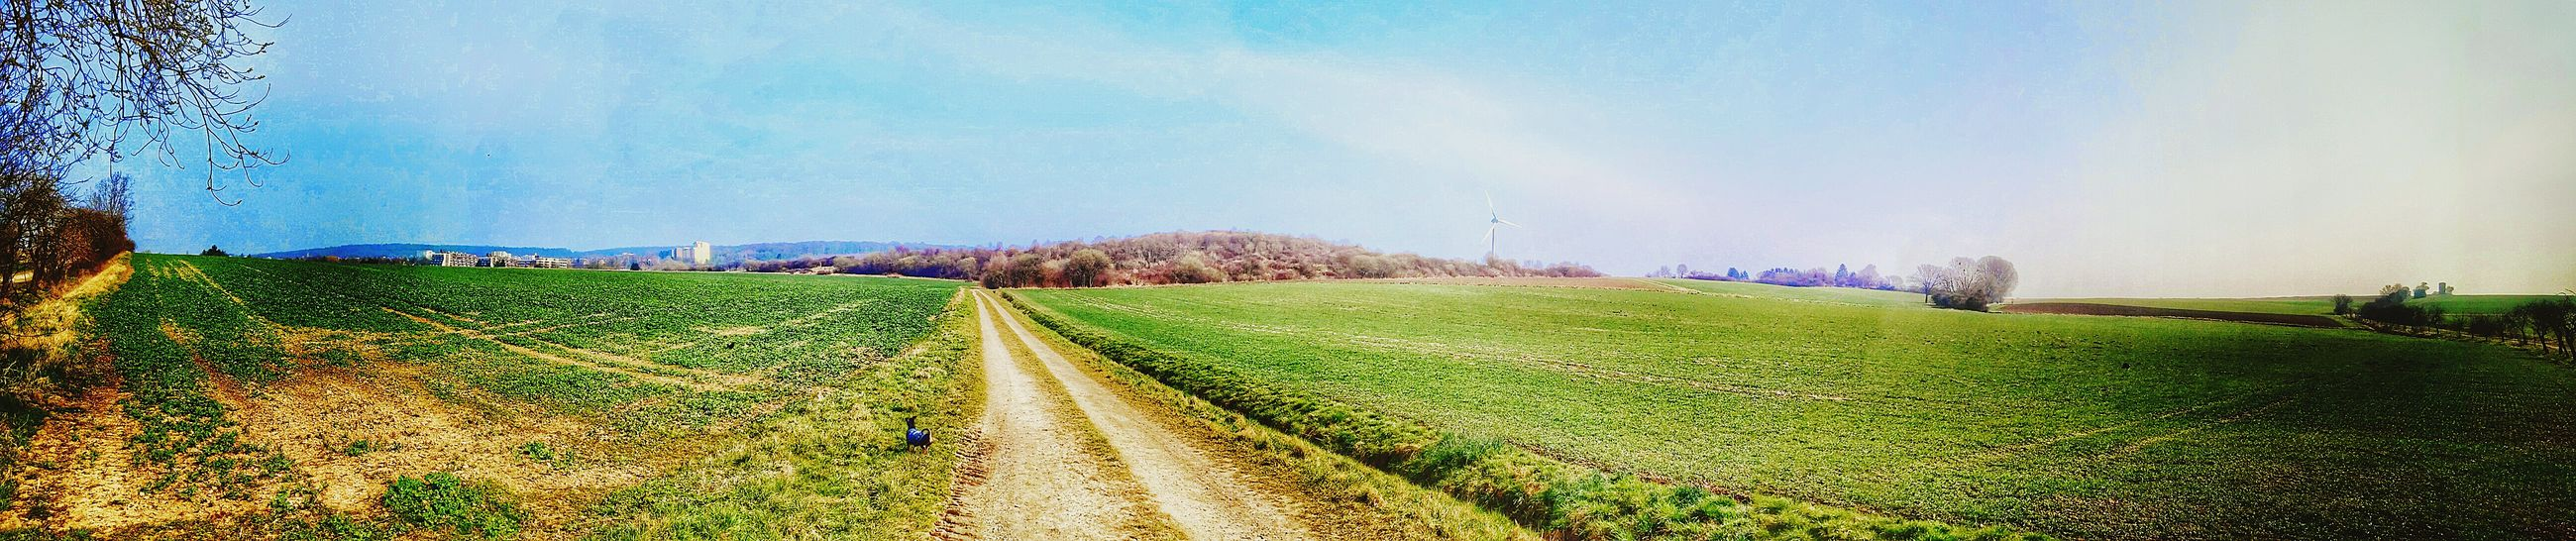 agriculture, field, landscape, rural scene, sky, farm, grass, tranquil scene, growth, tranquility, nature, crop, the way forward, beauty in nature, panoramic, green color, scenics, cultivated land, diminishing perspective, plant